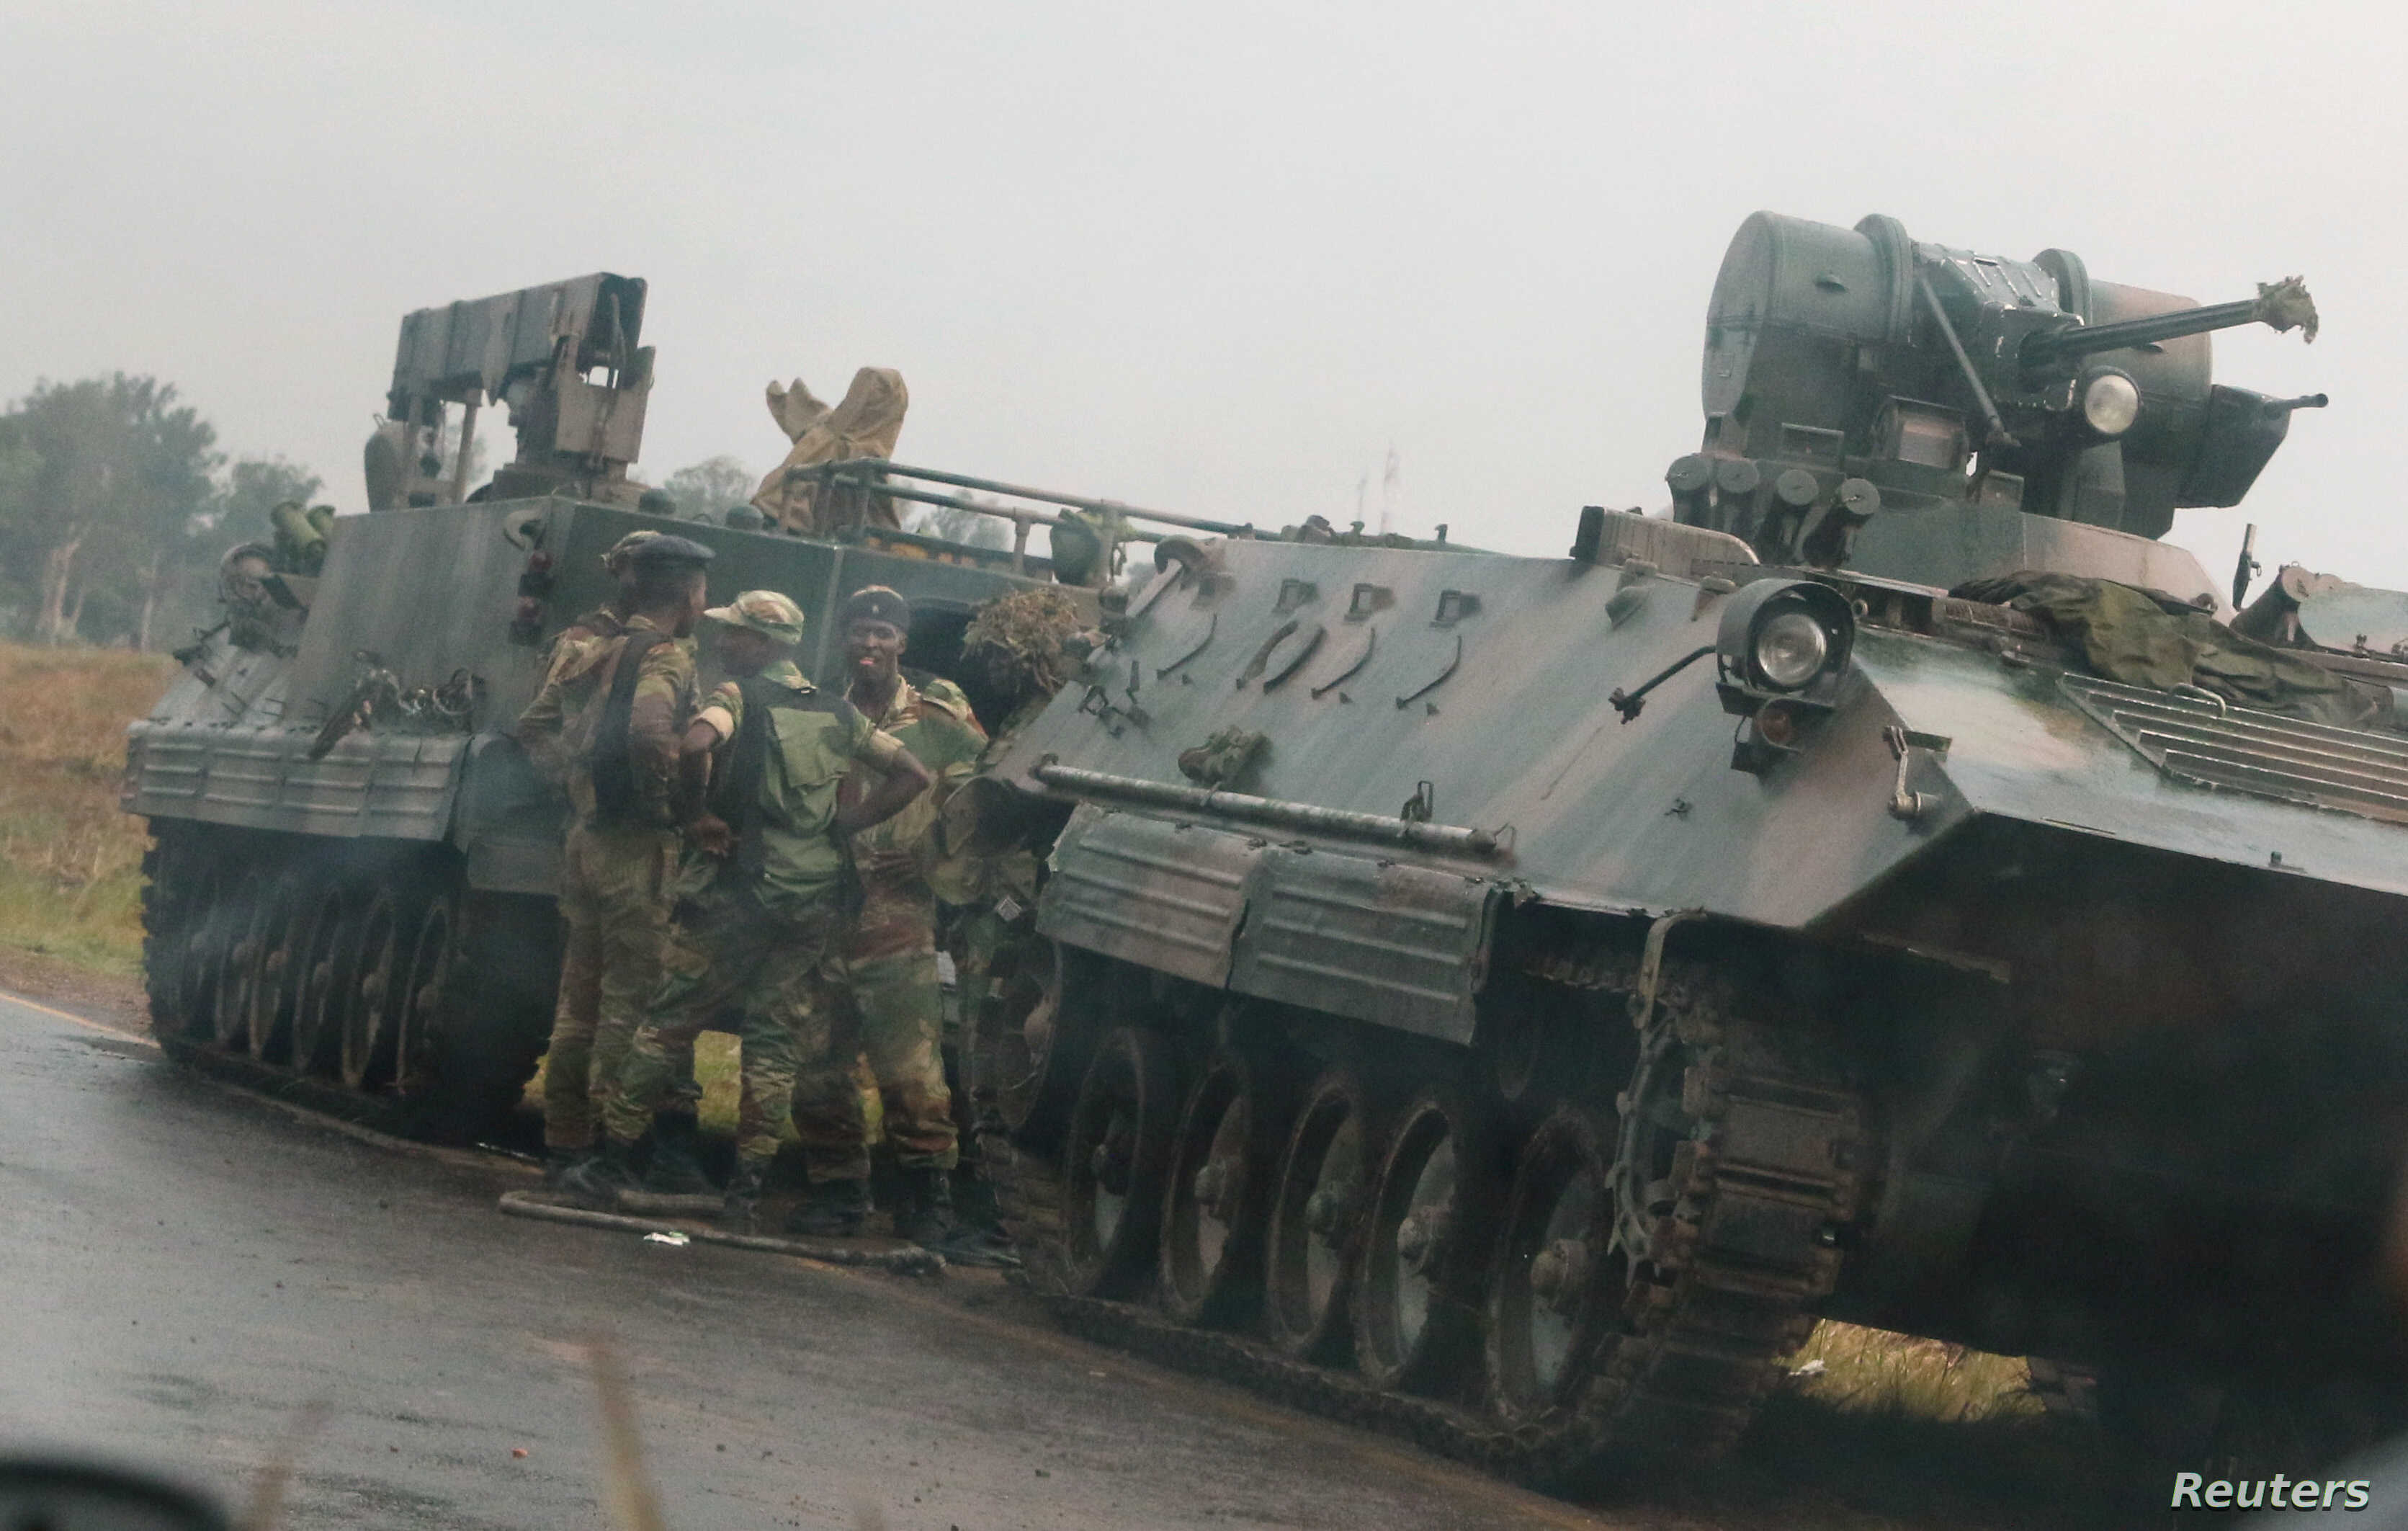 Soldiers stand beside military vehicles just outside Harare, Zimbabwe, Nov. 14,2017.